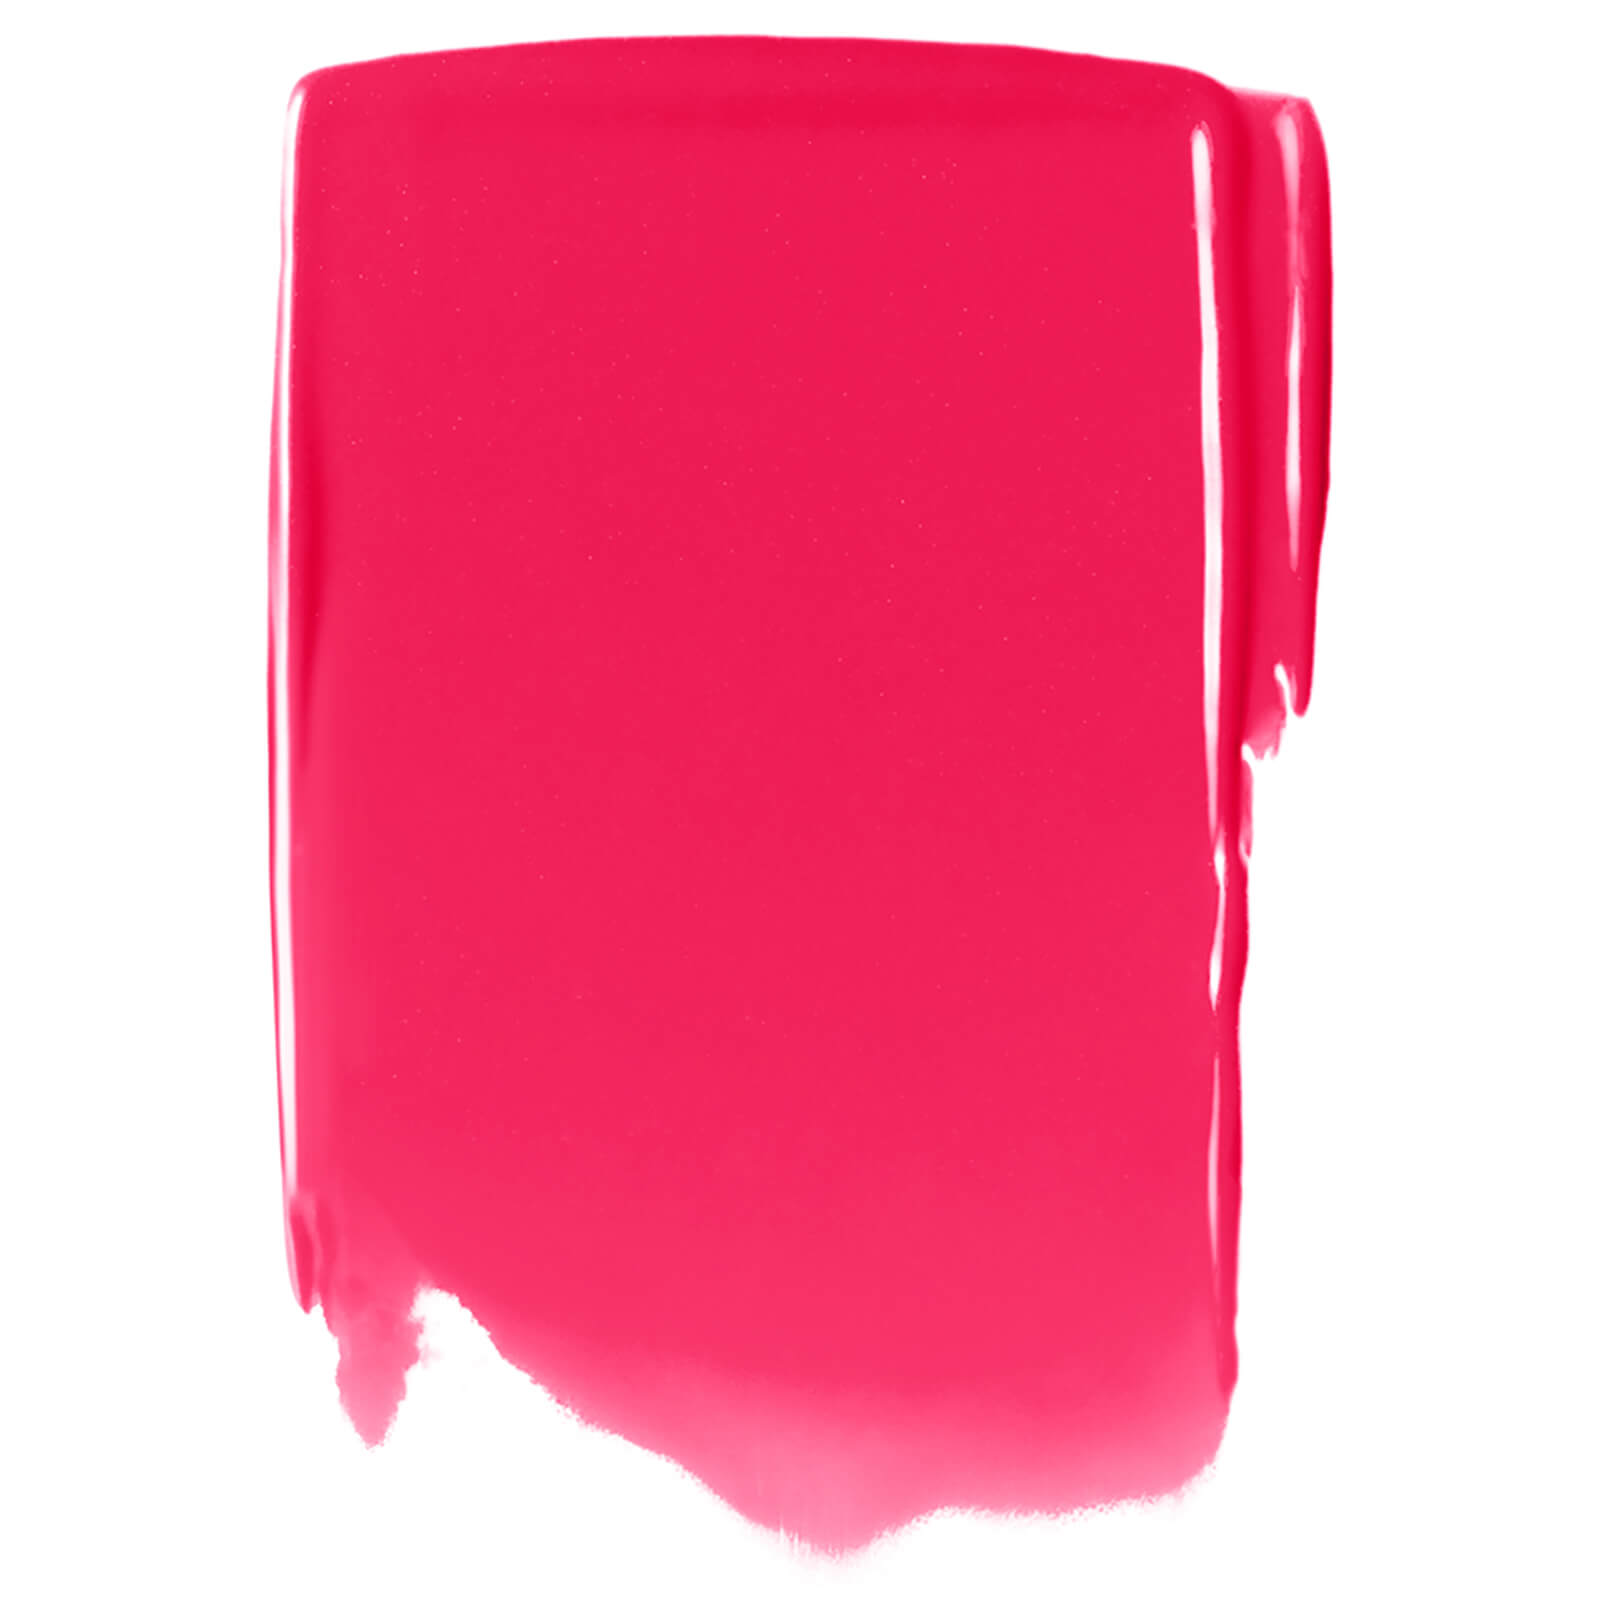 NARS Cosmetics Powermatte Lip Pigment 5.5ml (Various Shades) - Get Up Stand Up